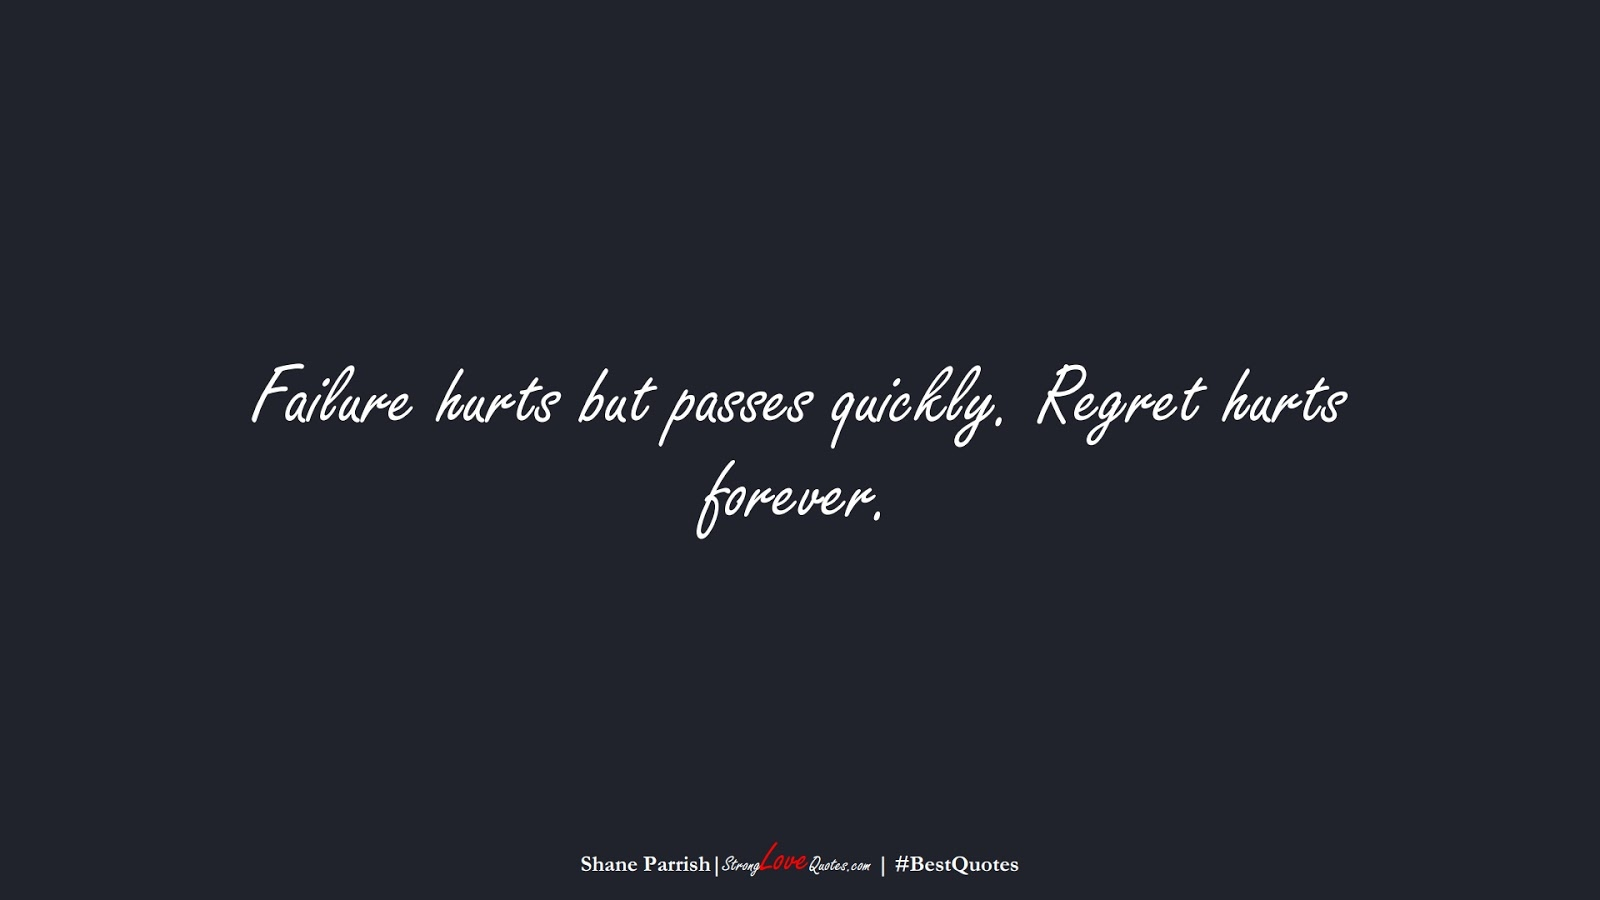 Failure hurts but passes quickly. Regret hurts forever. (Shane Parrish);  #BestQuotes